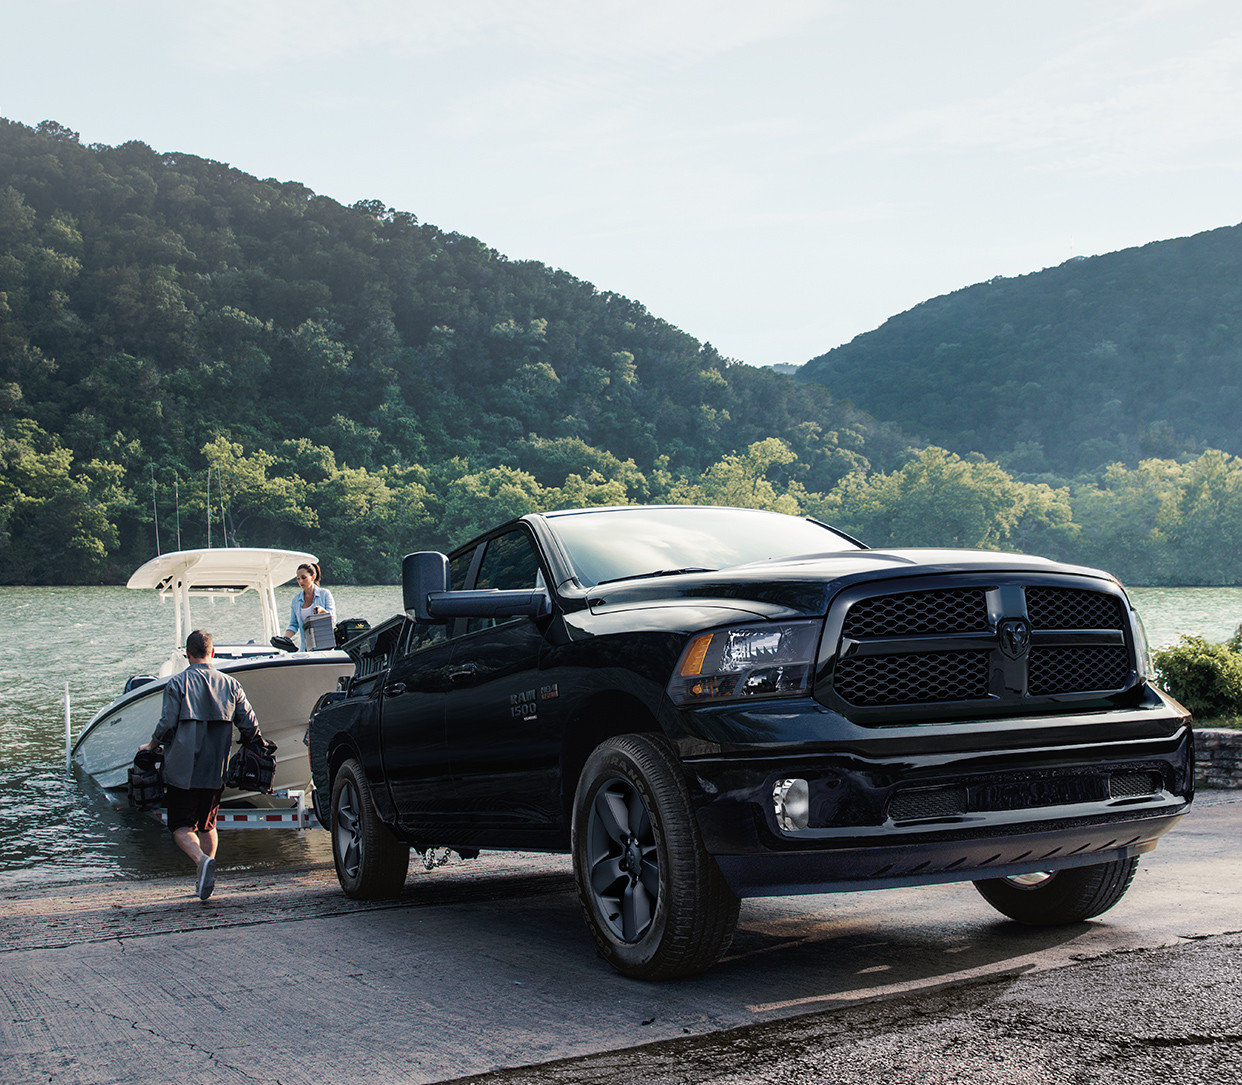 Black 2019 Ram 1500 Classic towing a boat out of a river.